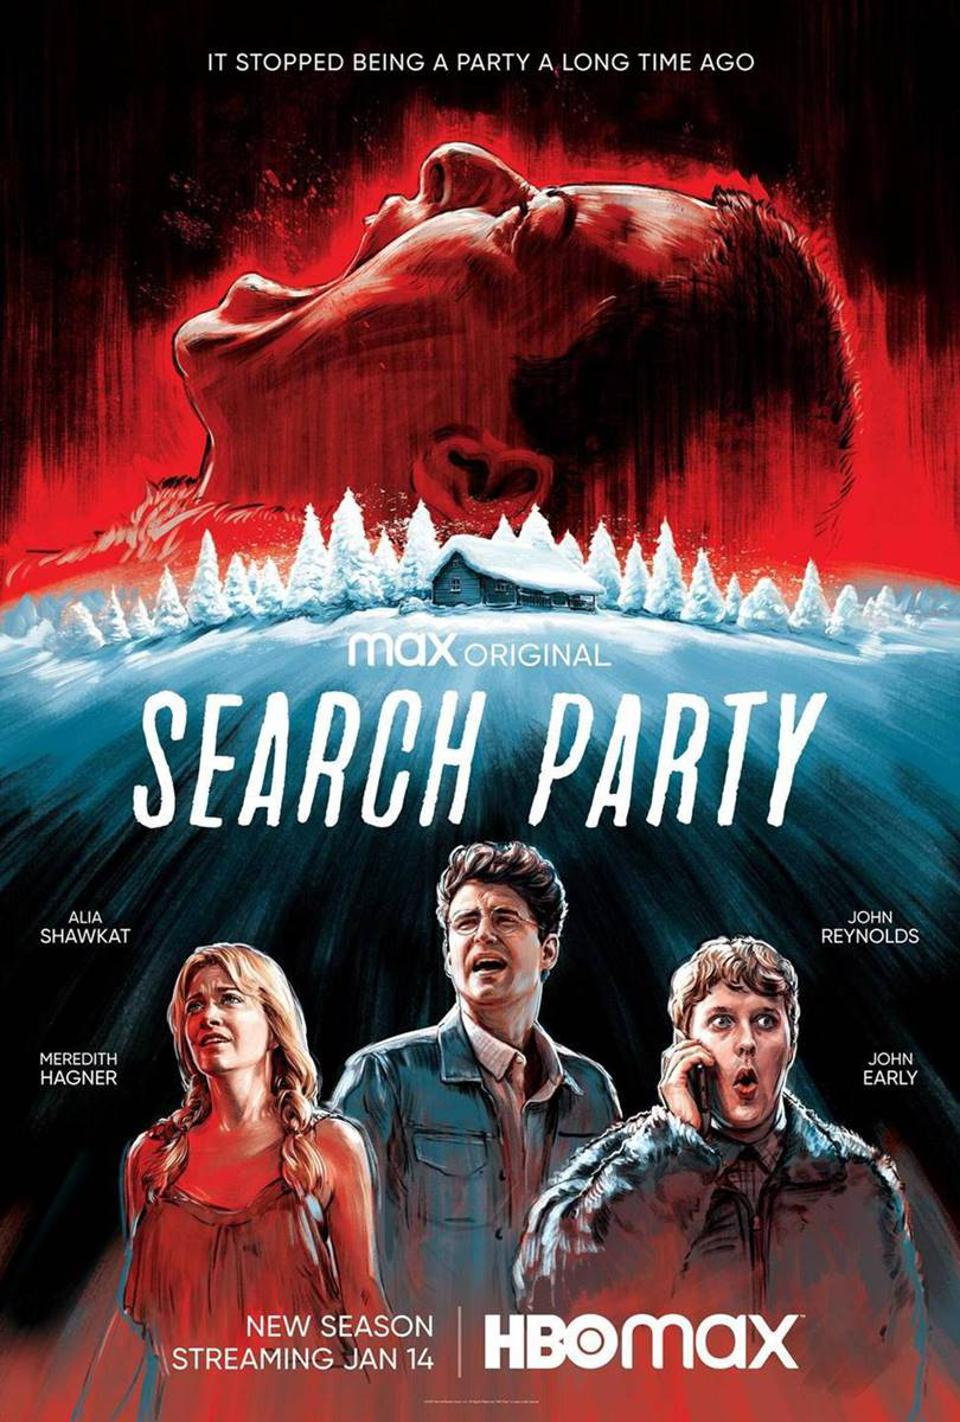 A poster for ″Search Party″ which shows a woman's face screaming above a winter cabin.